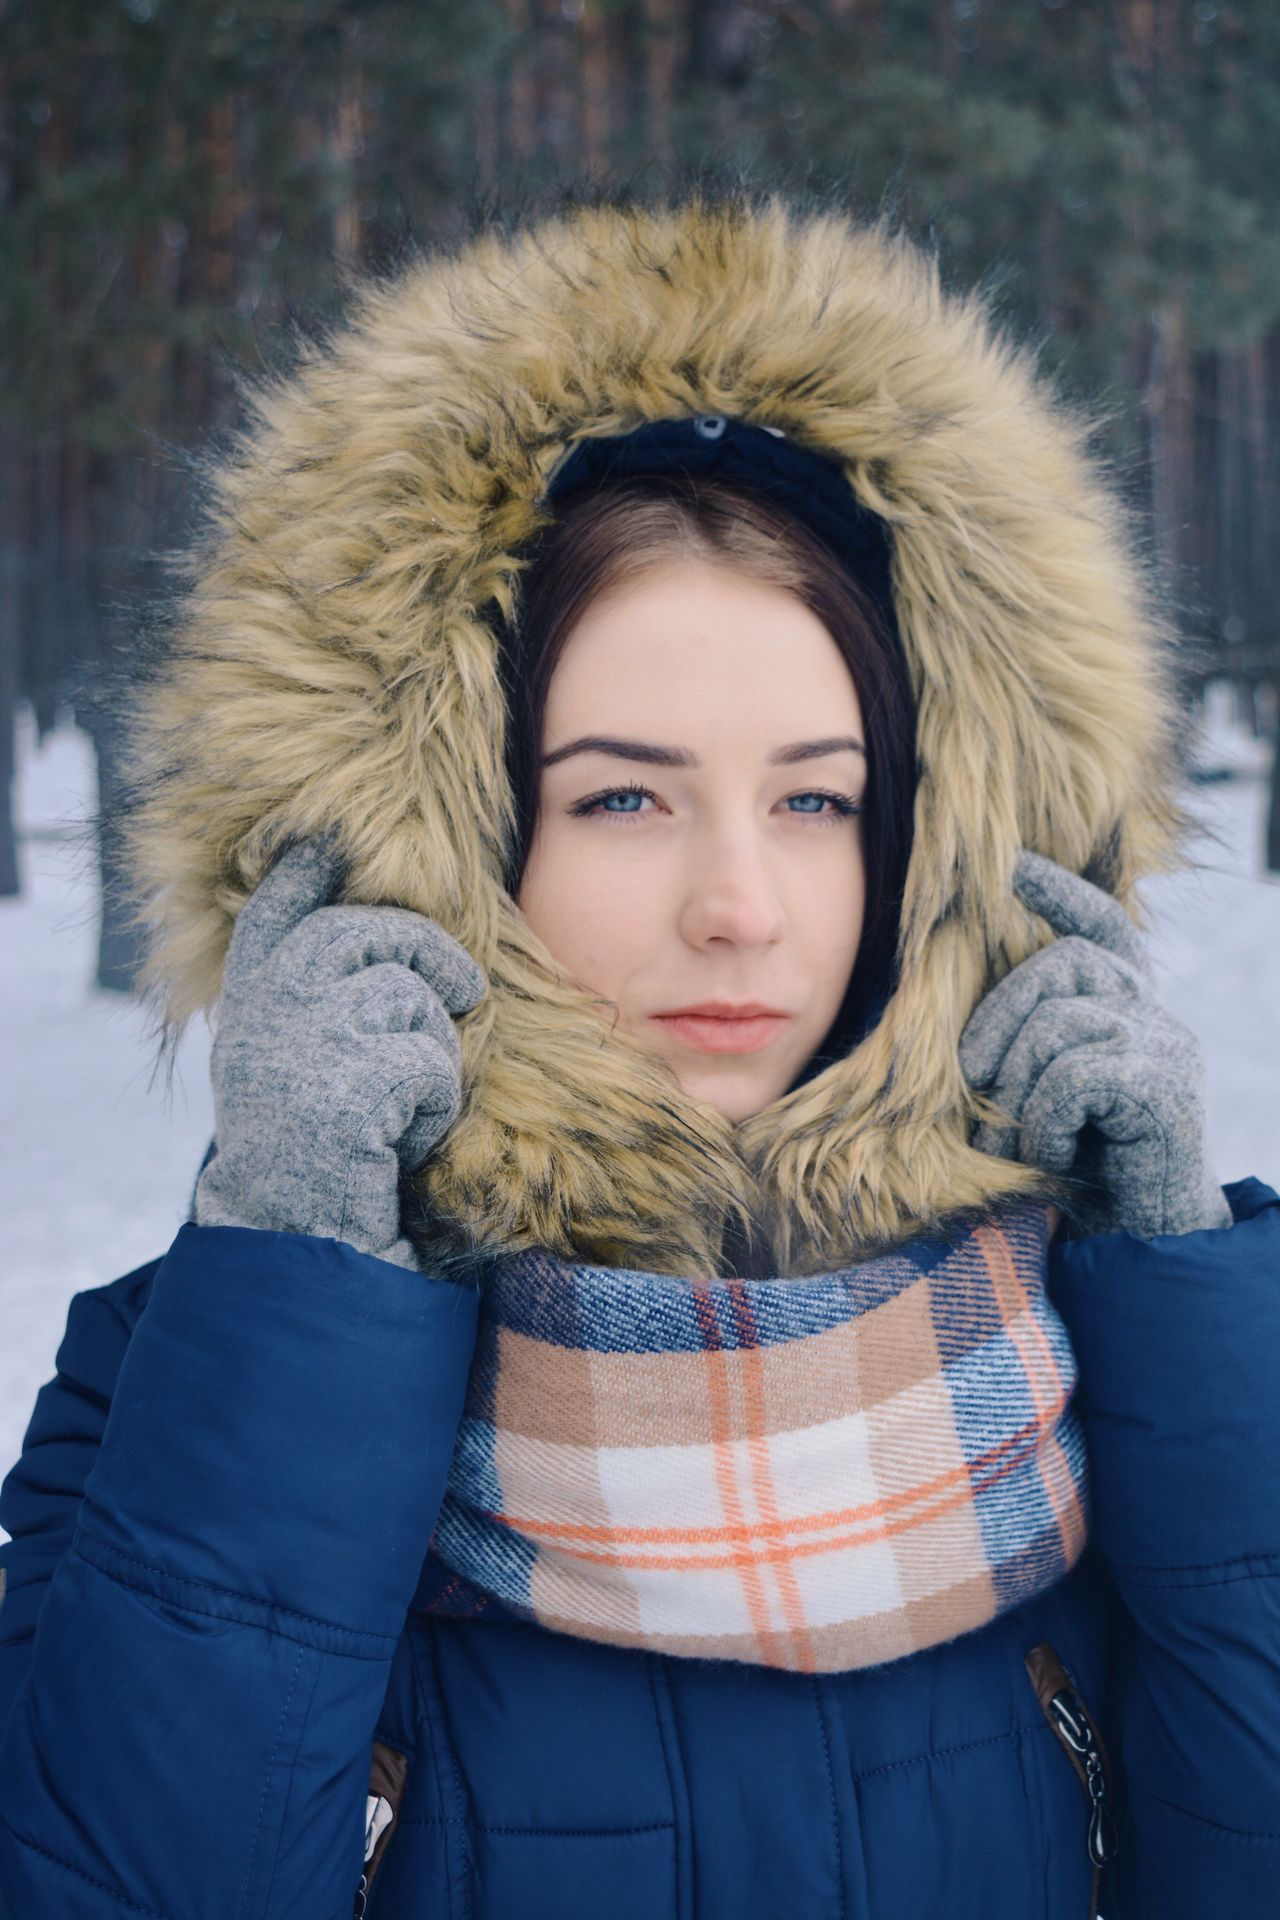 Winter portrait Winter Cold Temperature Looking At Camera Warm Clothing Portrait Snow Young Adult Glove Beautiful People Fur Young Women One Person Front View One Young Woman Only Outdoors Beautiful Woman Blond Hair Scarf Beauty Fur Hat